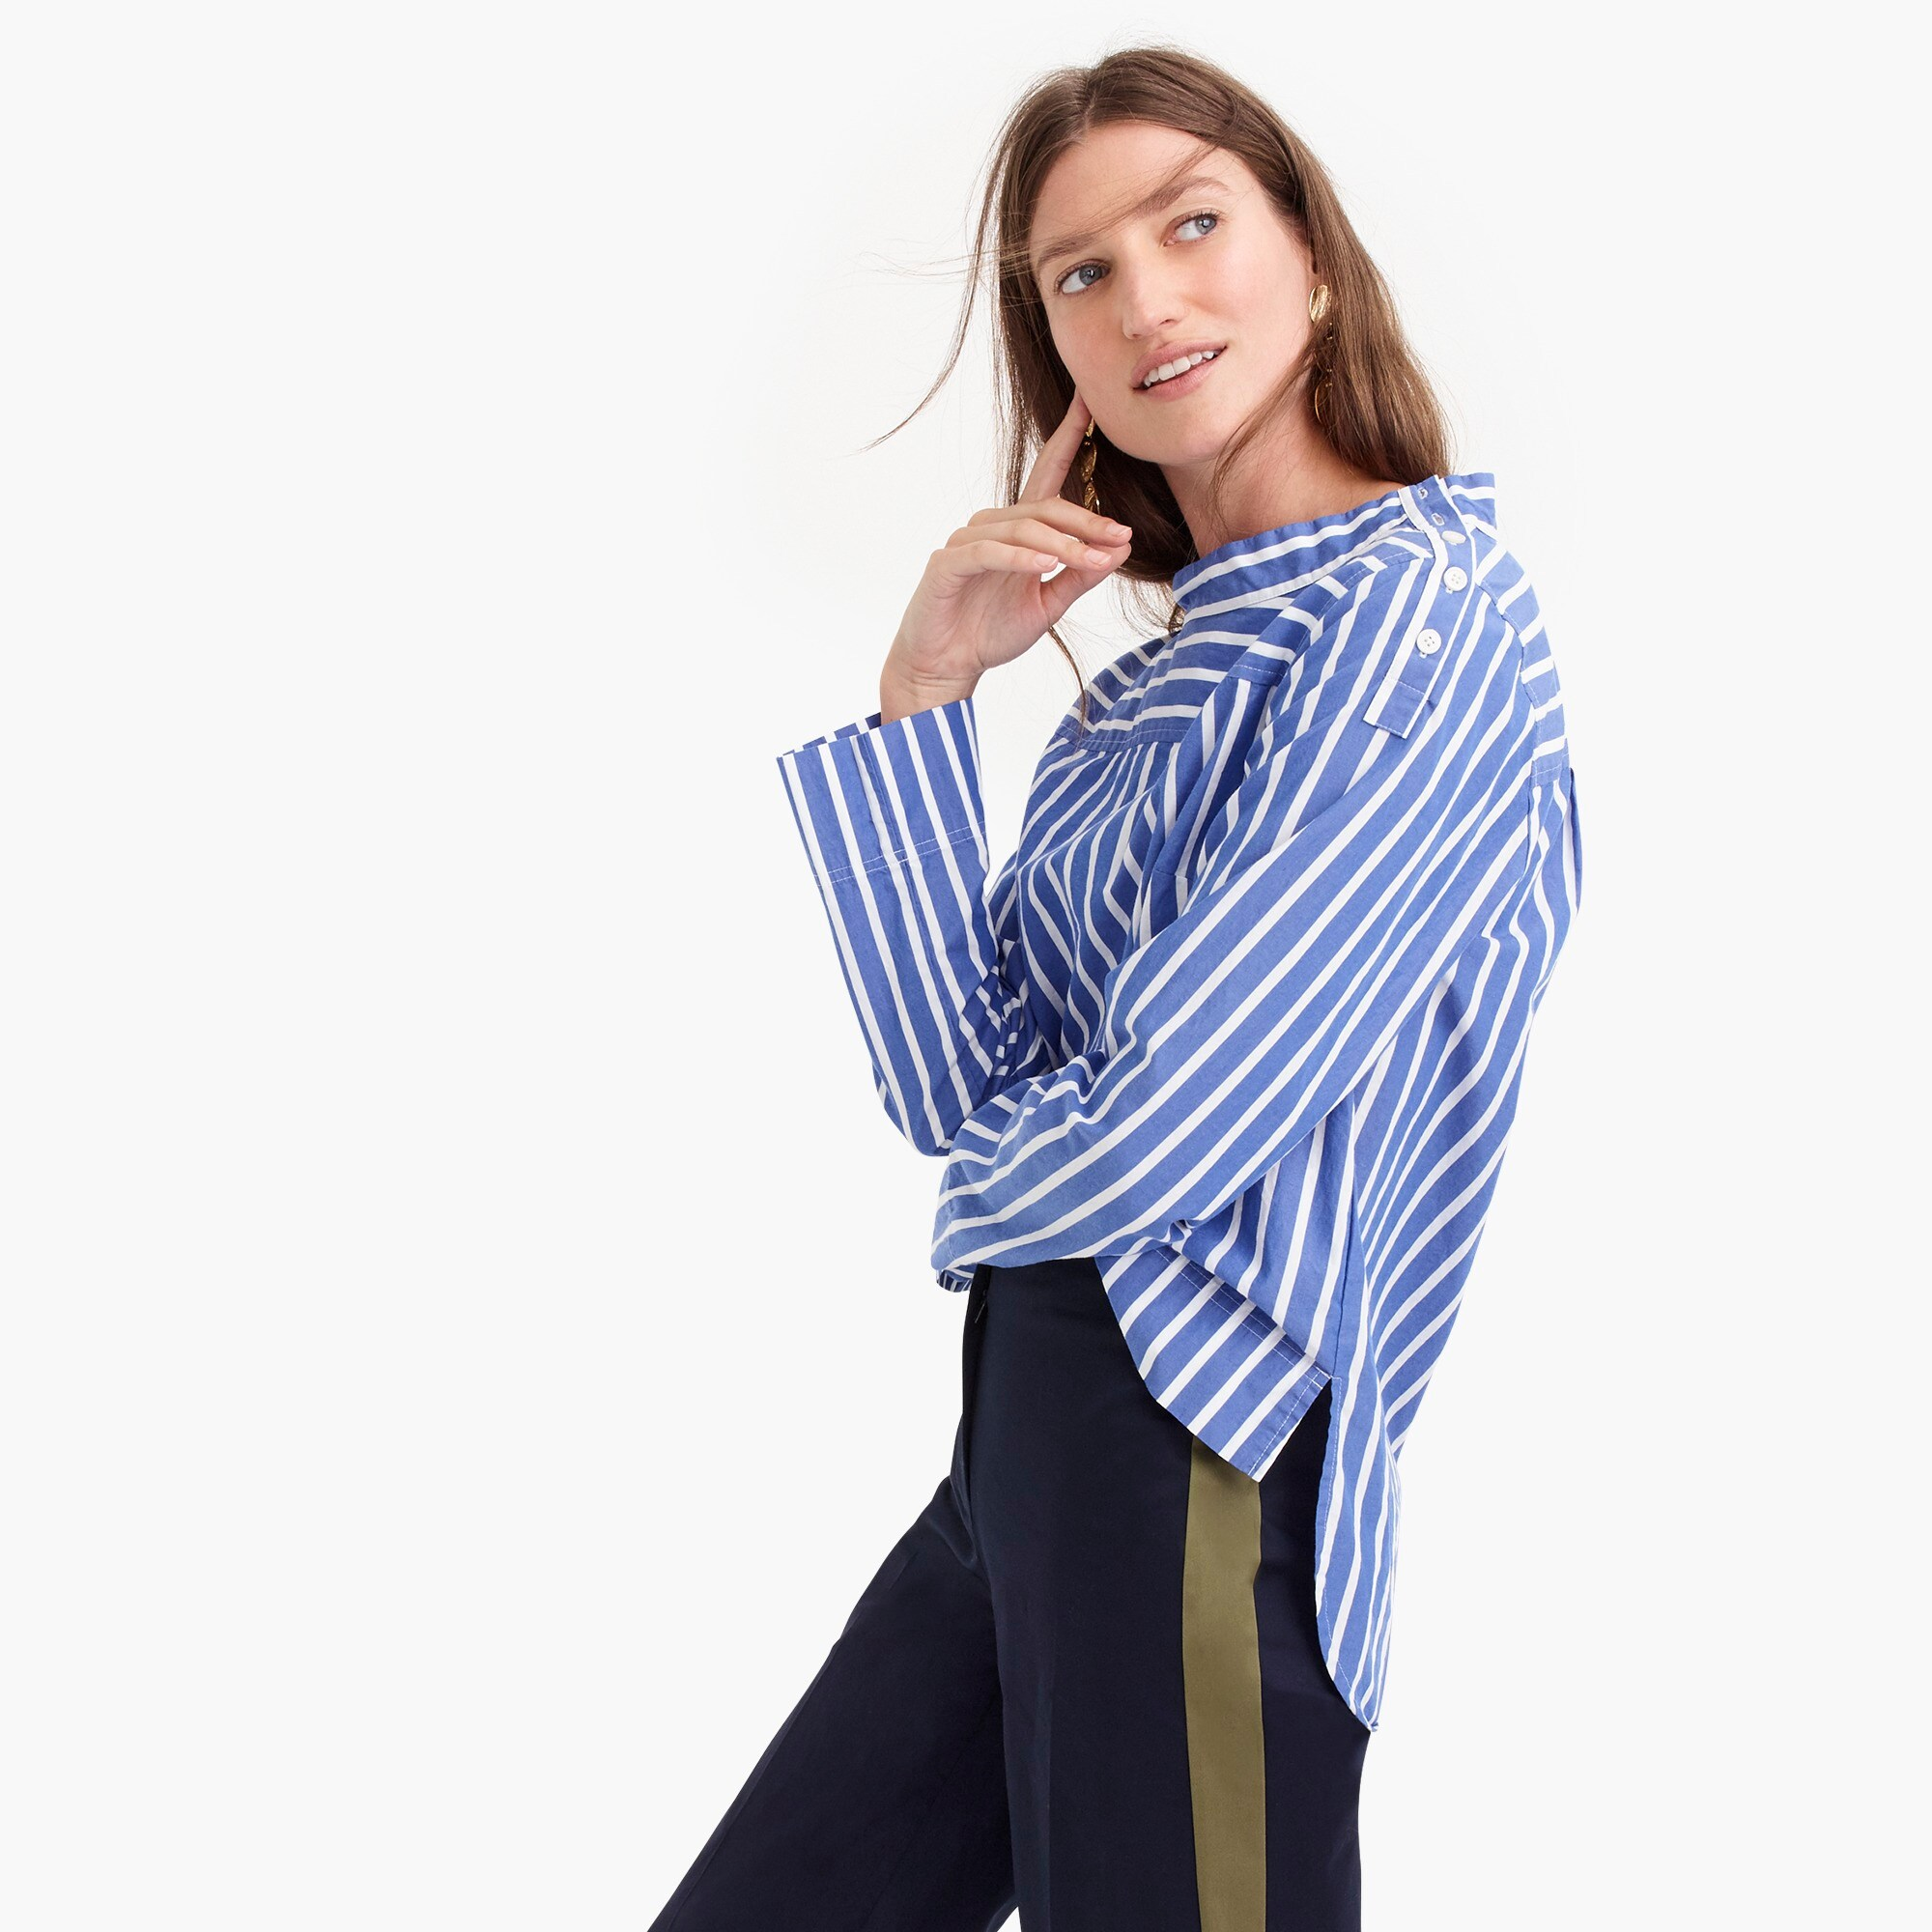 Image 1 for Tall funnelneck striped shirt